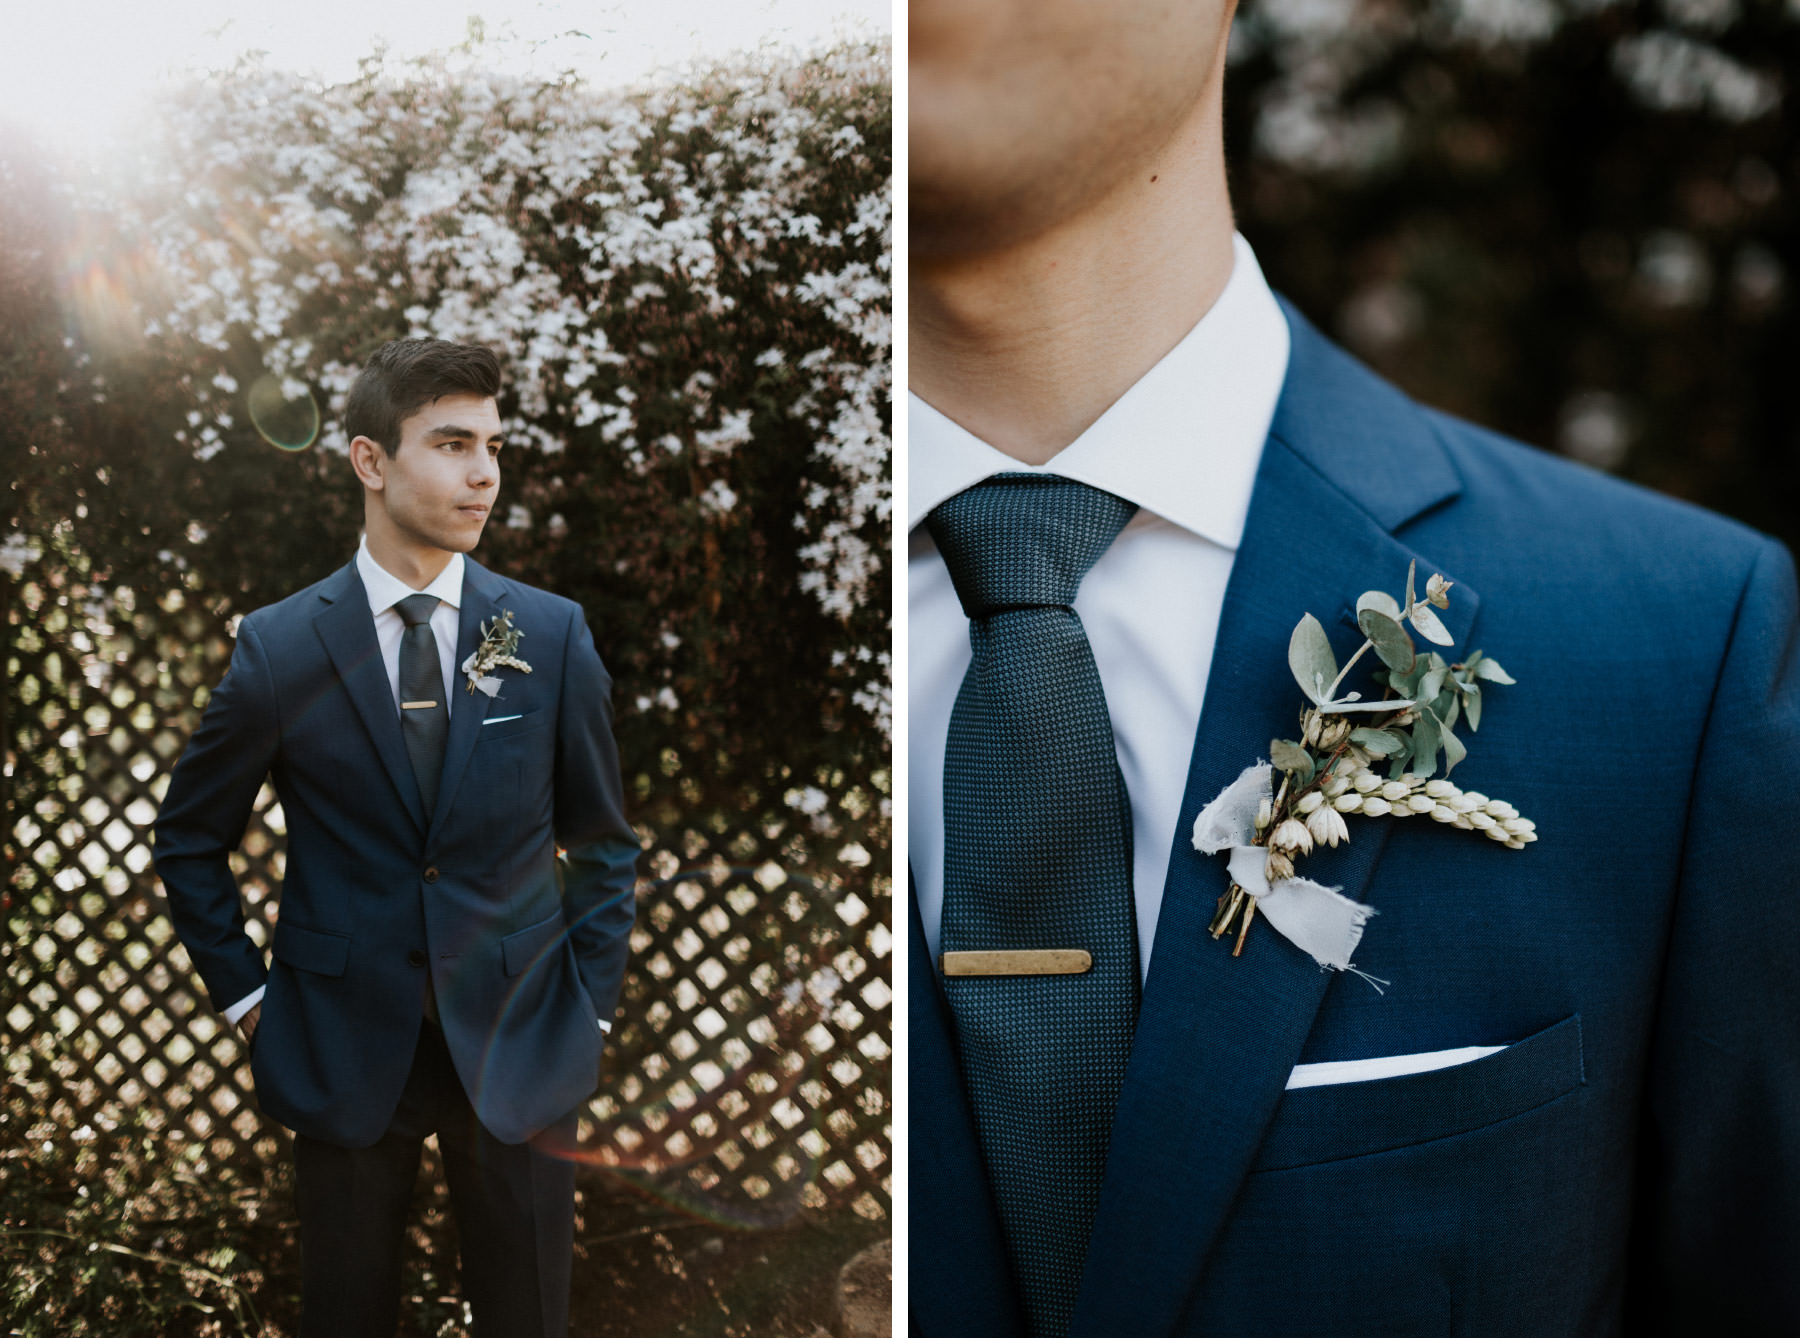 Groom in a navy suit with simple greenery boutonniere